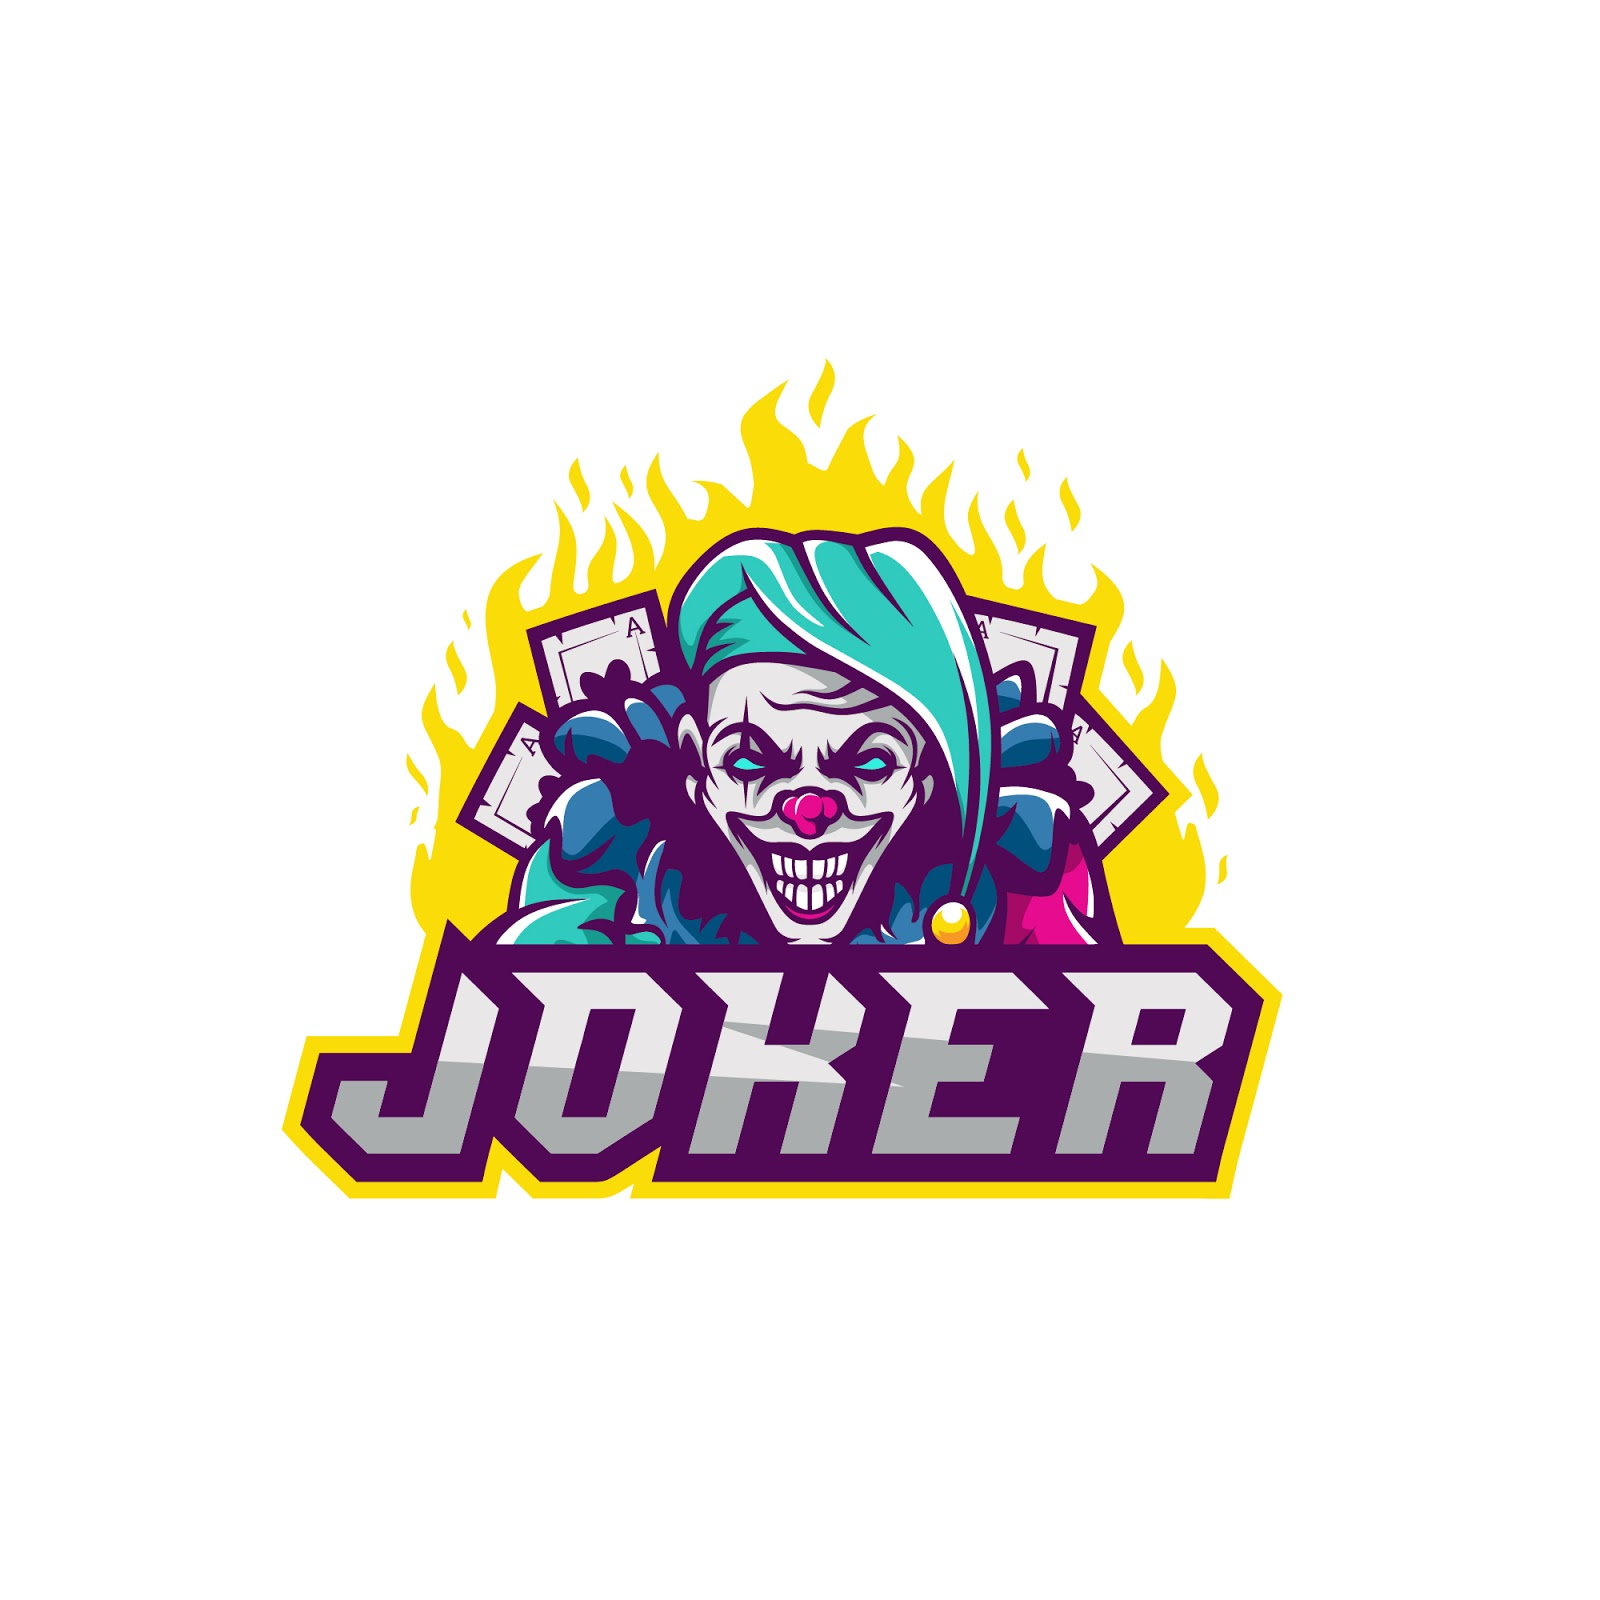 Joker Premium Squad Gaming Free Download Vector CDR, AI, EPS and PNG Formats